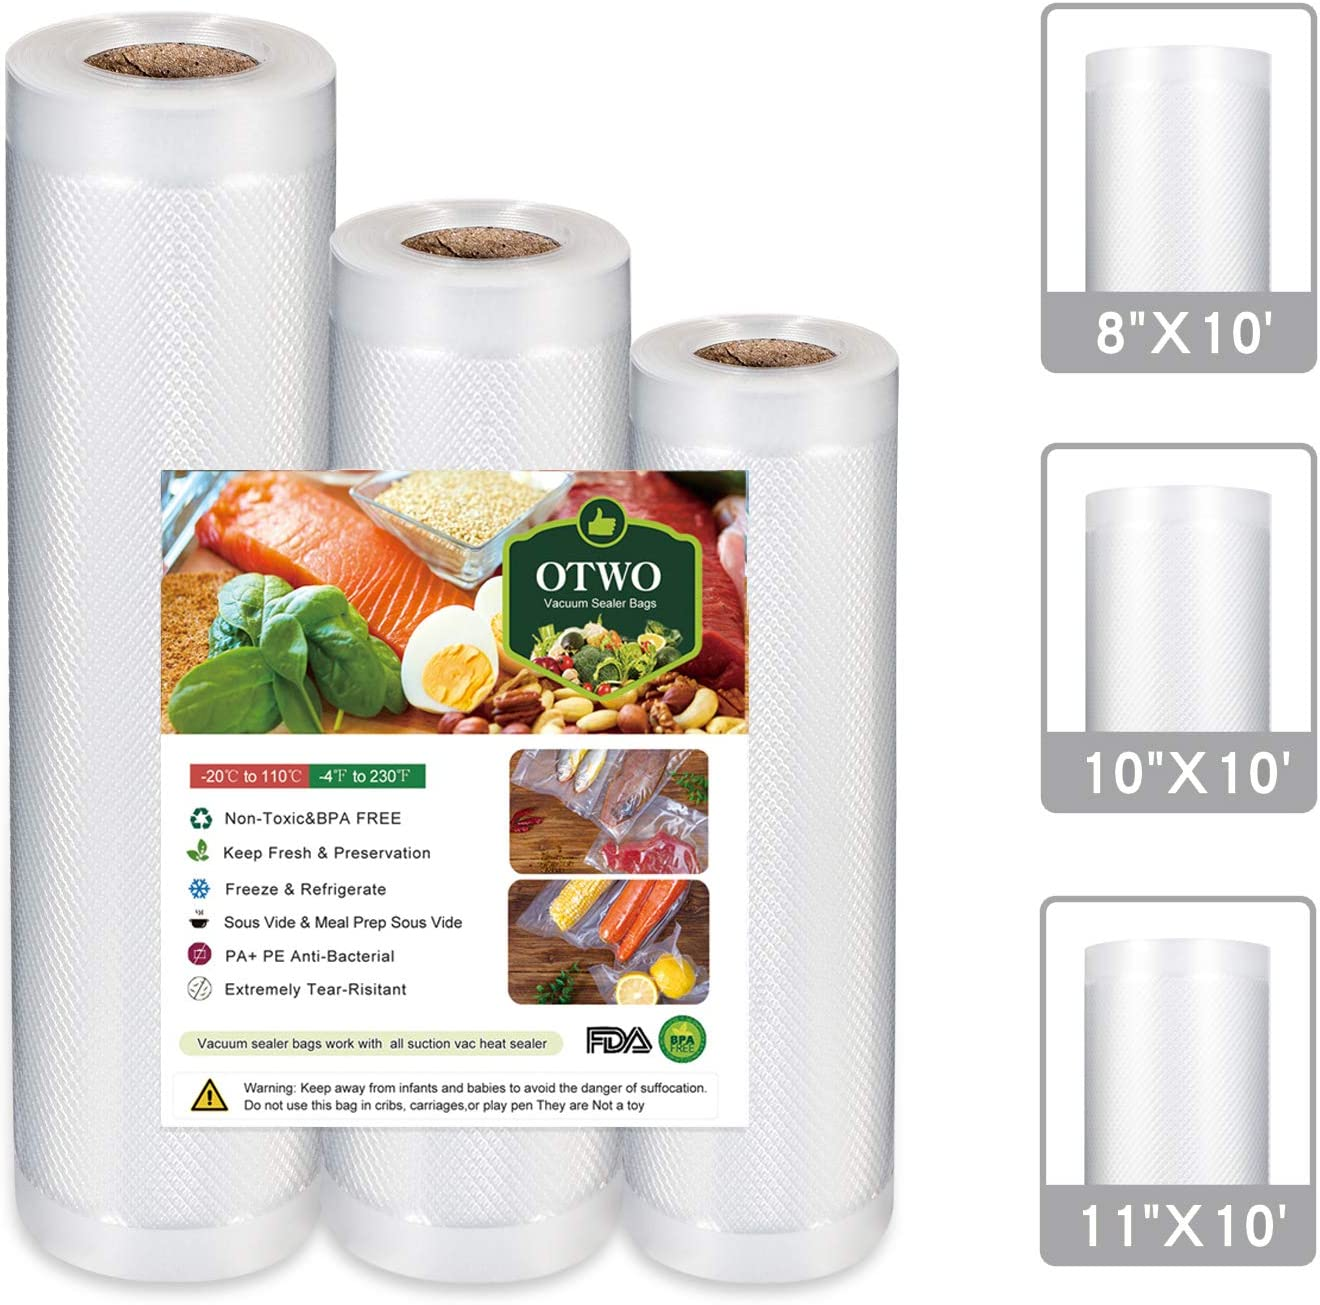 OTWO Vacuum Sealer Bags Roll 8'' x 10'' 10' x 10'' 11' x 10'' Food Saver Rolls Combo pack, BPA Free, Heavy Duty, Sealer Bags Rolls Fit Meal Preparation, Sous Vibe cooking and Vacuum Sealer/packer